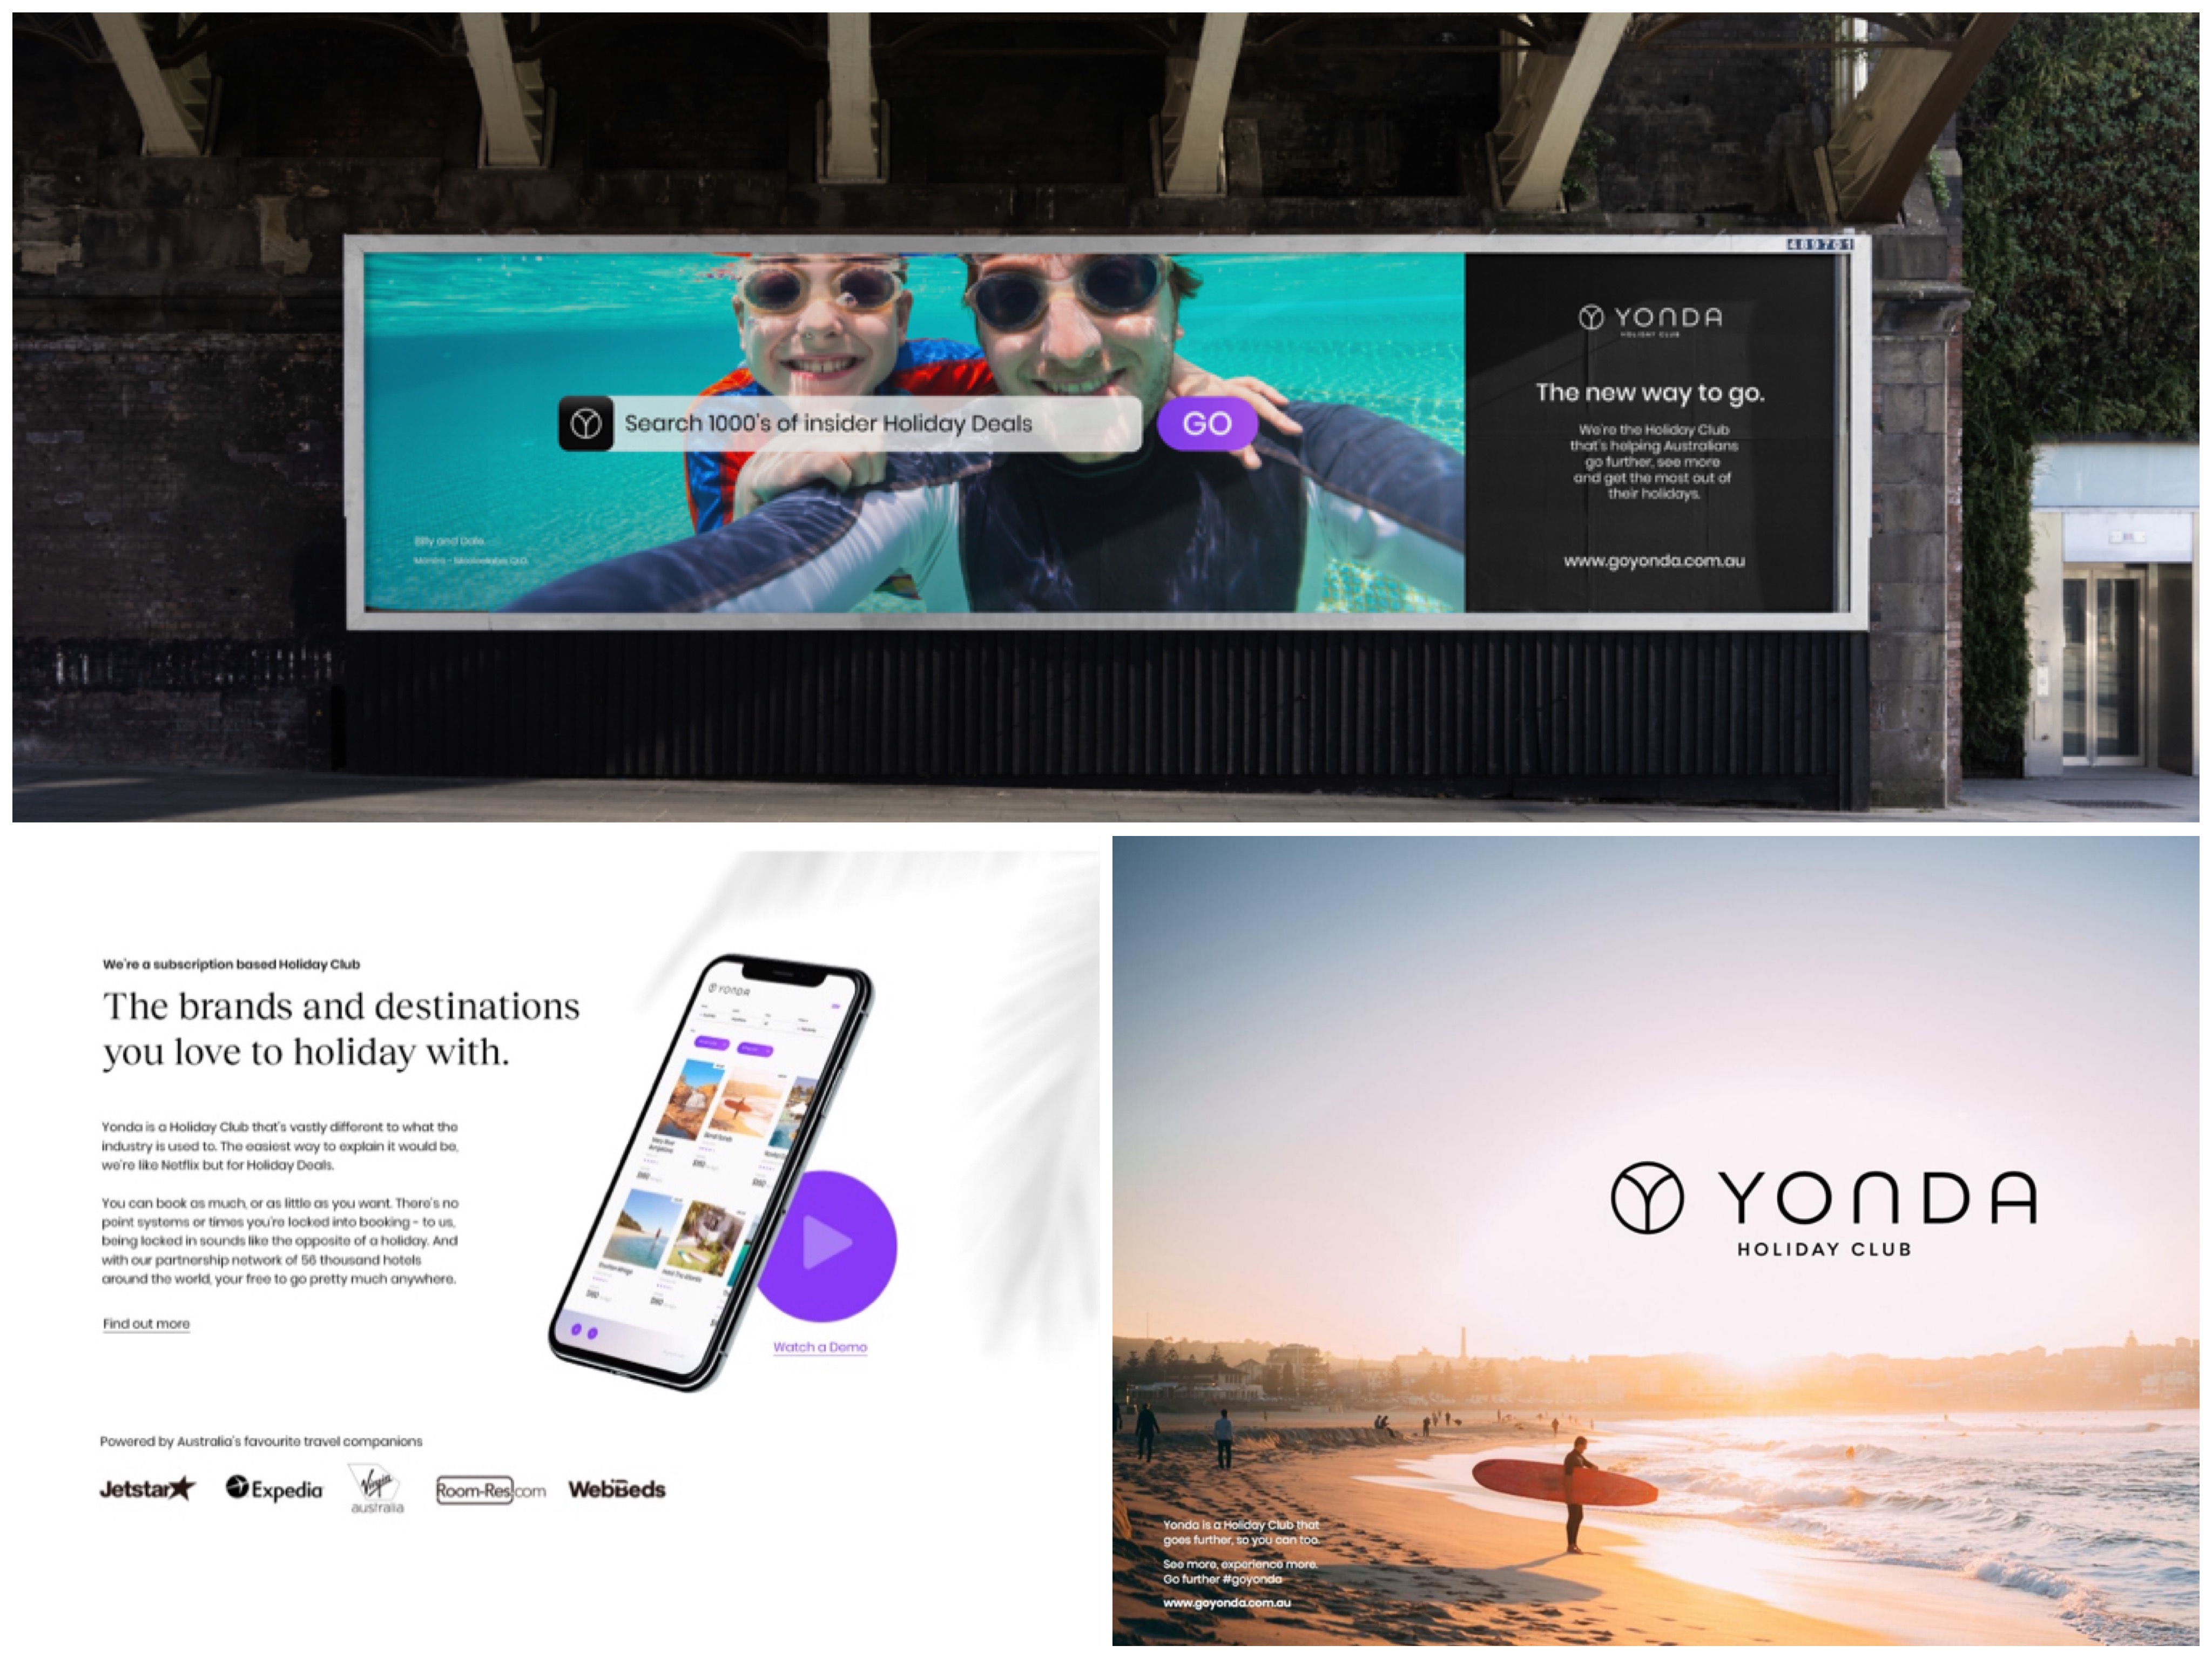 THE HOLIDAY GROUP ANNOUNCES NEW CO BRANDING ; INTRODUCING 'YONDA' - THE HOLIDAY GROUP THAT GOES FURTHER